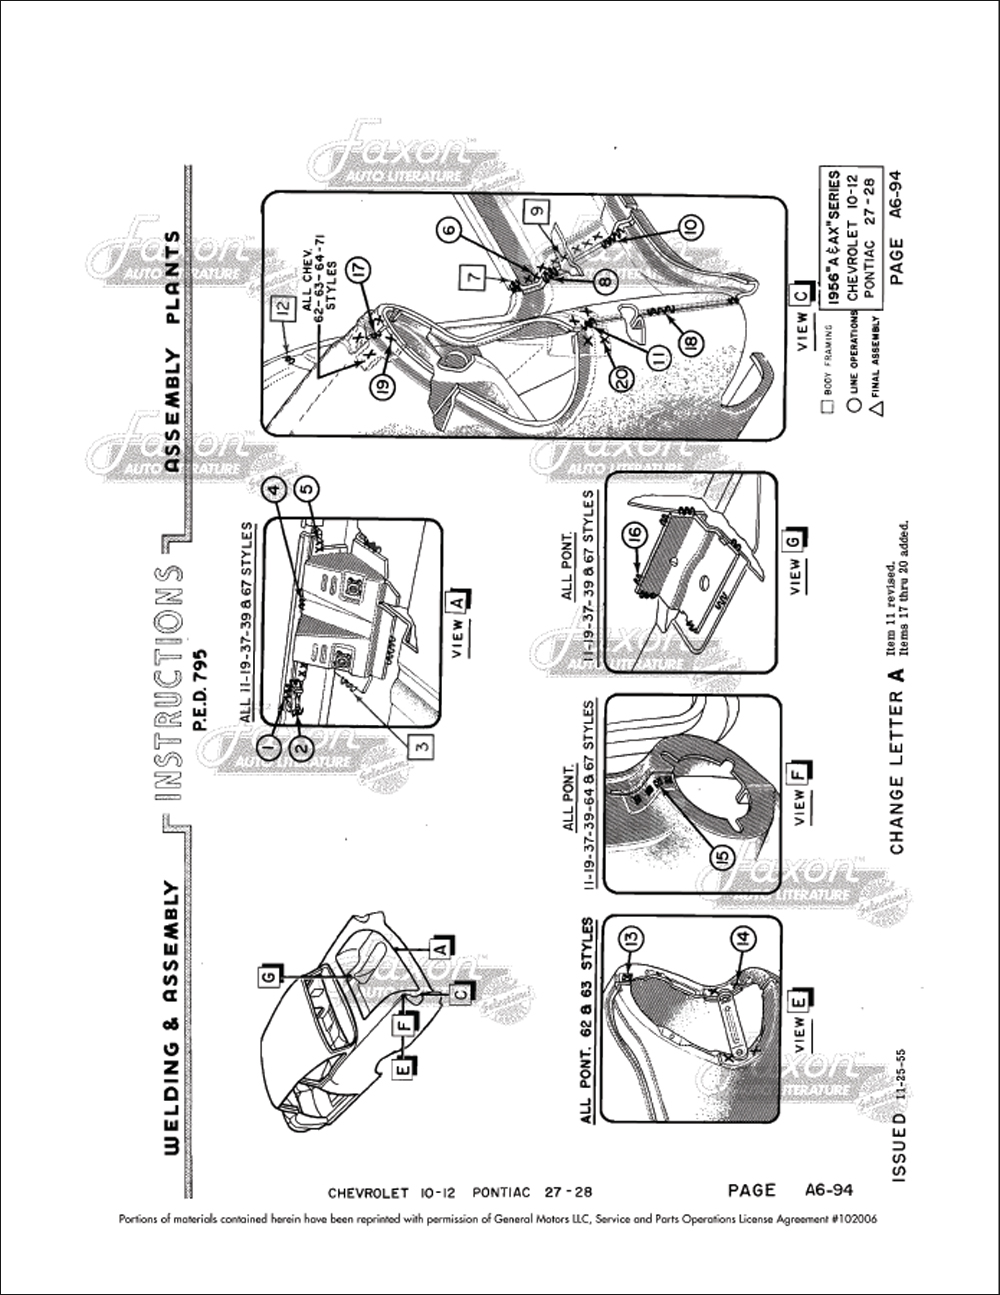 1970 plymouth turn signal wiring diagram html